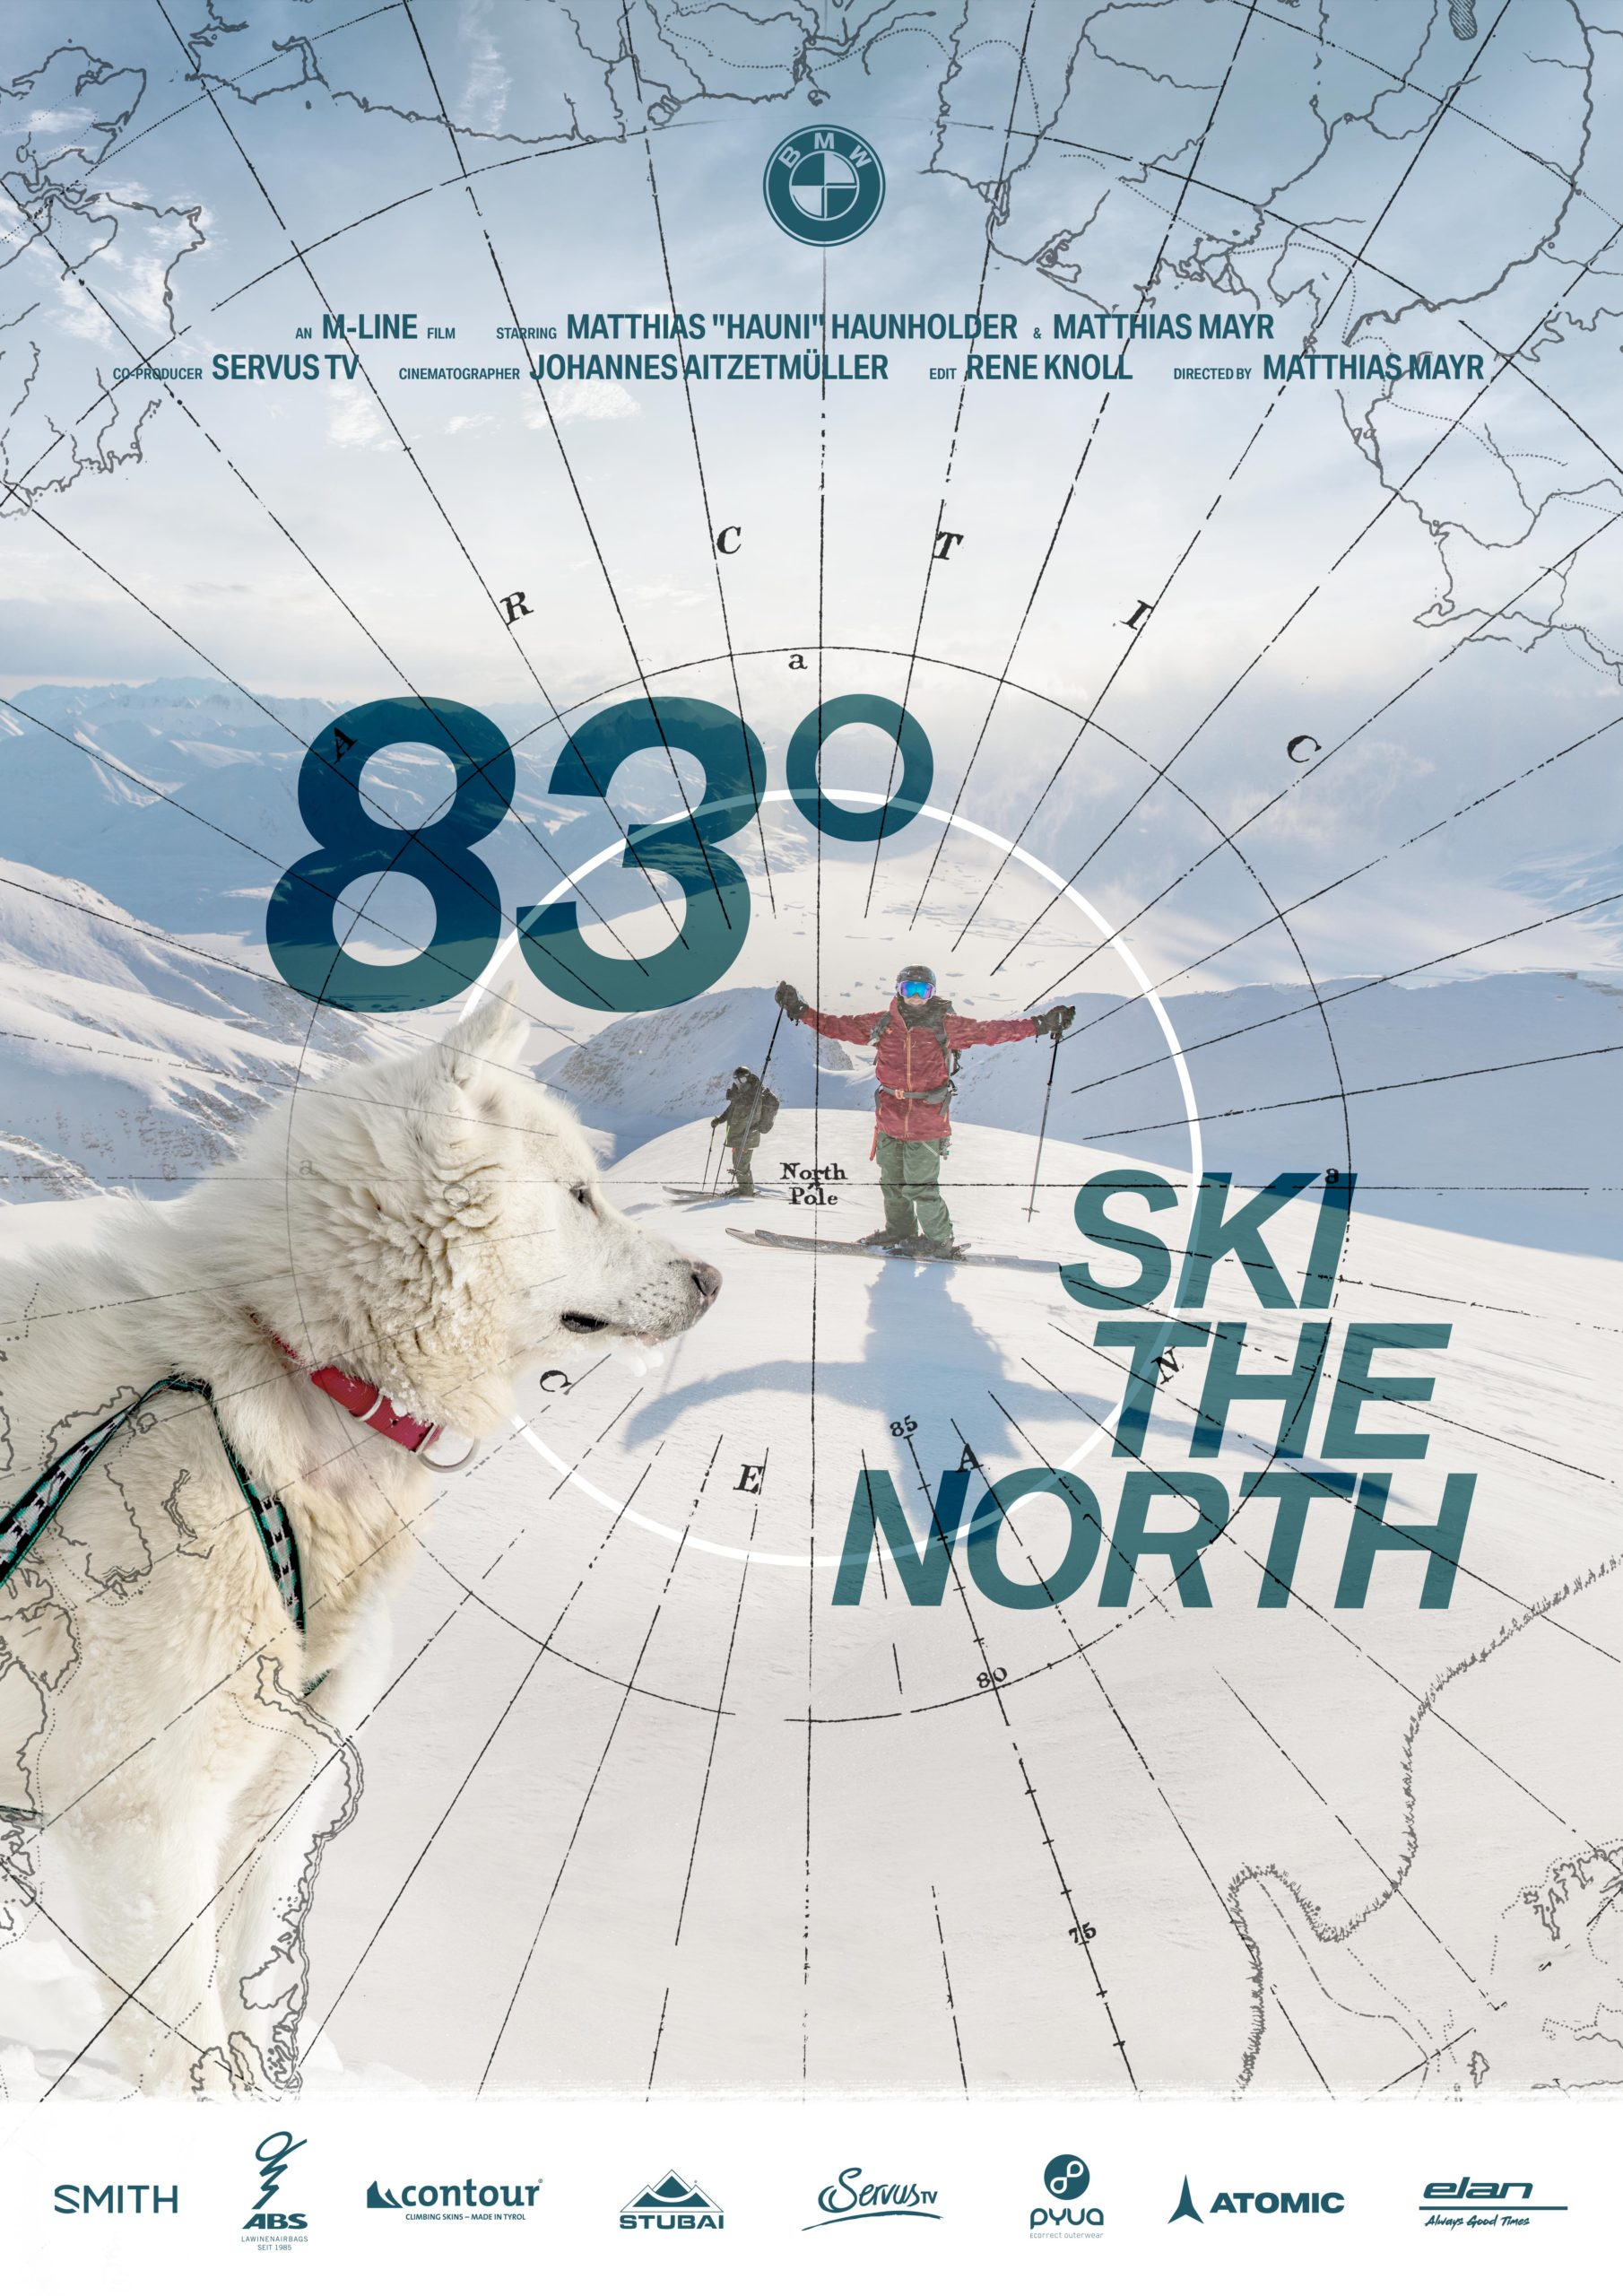 83° Ski The North